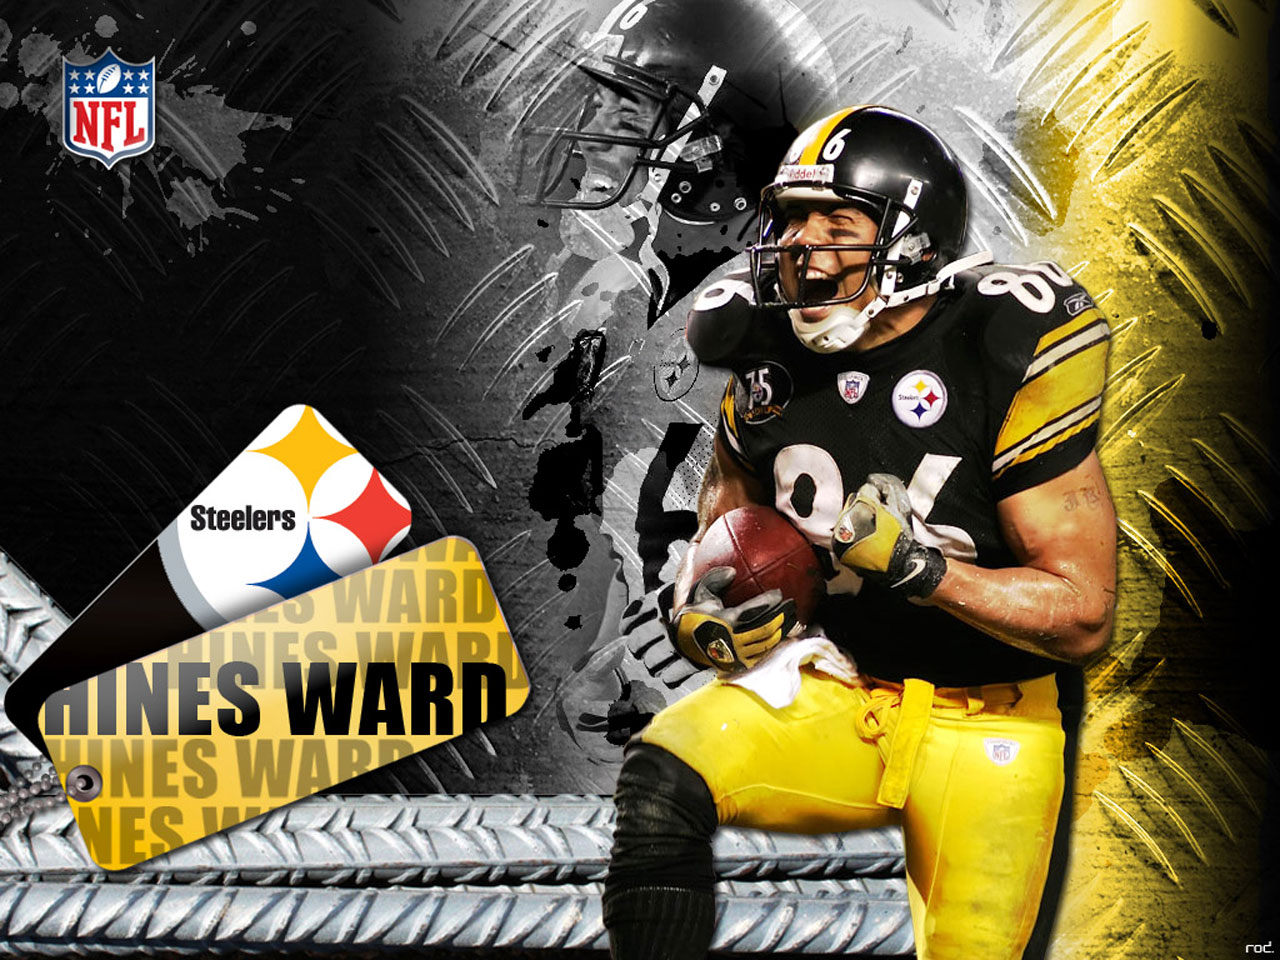 http://4.bp.blogspot.com/_SPY5-z18DBU/TS-rR55fOzI/AAAAAAAAAIA/5IRitt3ijbM/s1600/hine_ward_wallpaper_pittsburgh_steelers_1280x960.jpeg